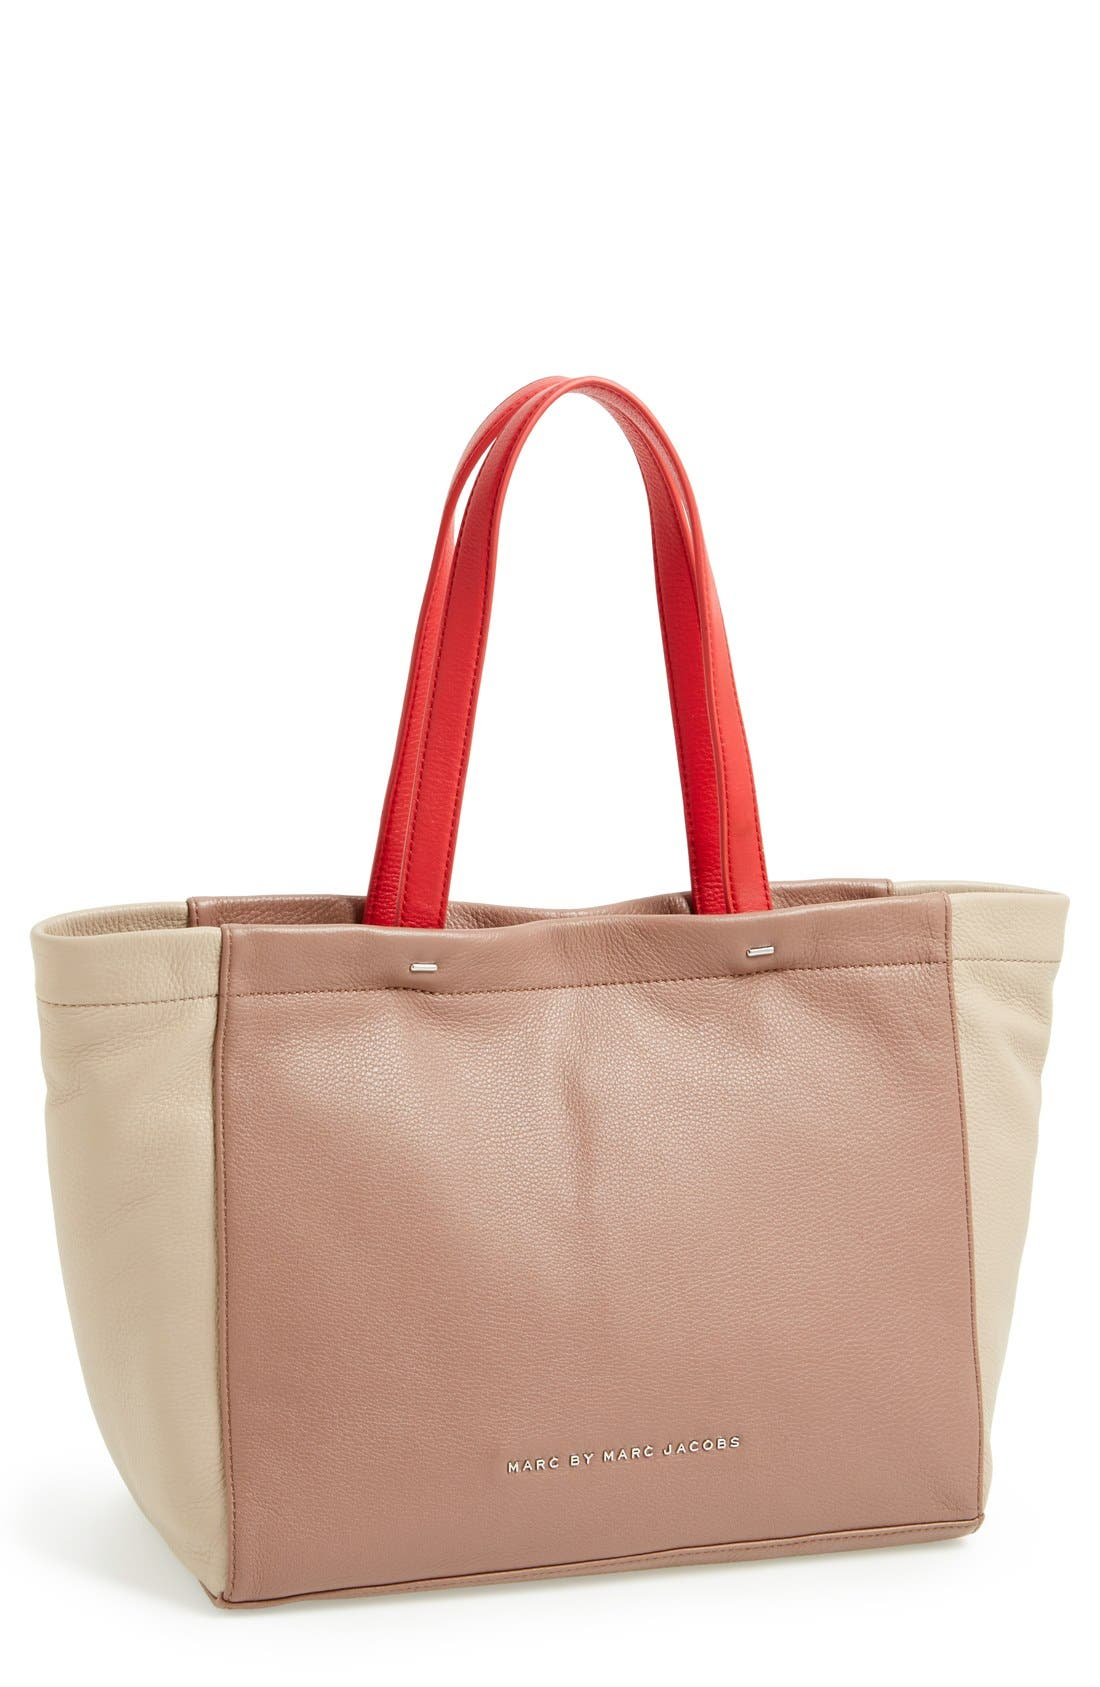 Alternate Image 1 Selected - MARC BY MARC JACOBS 'What's the T' Leather Tote